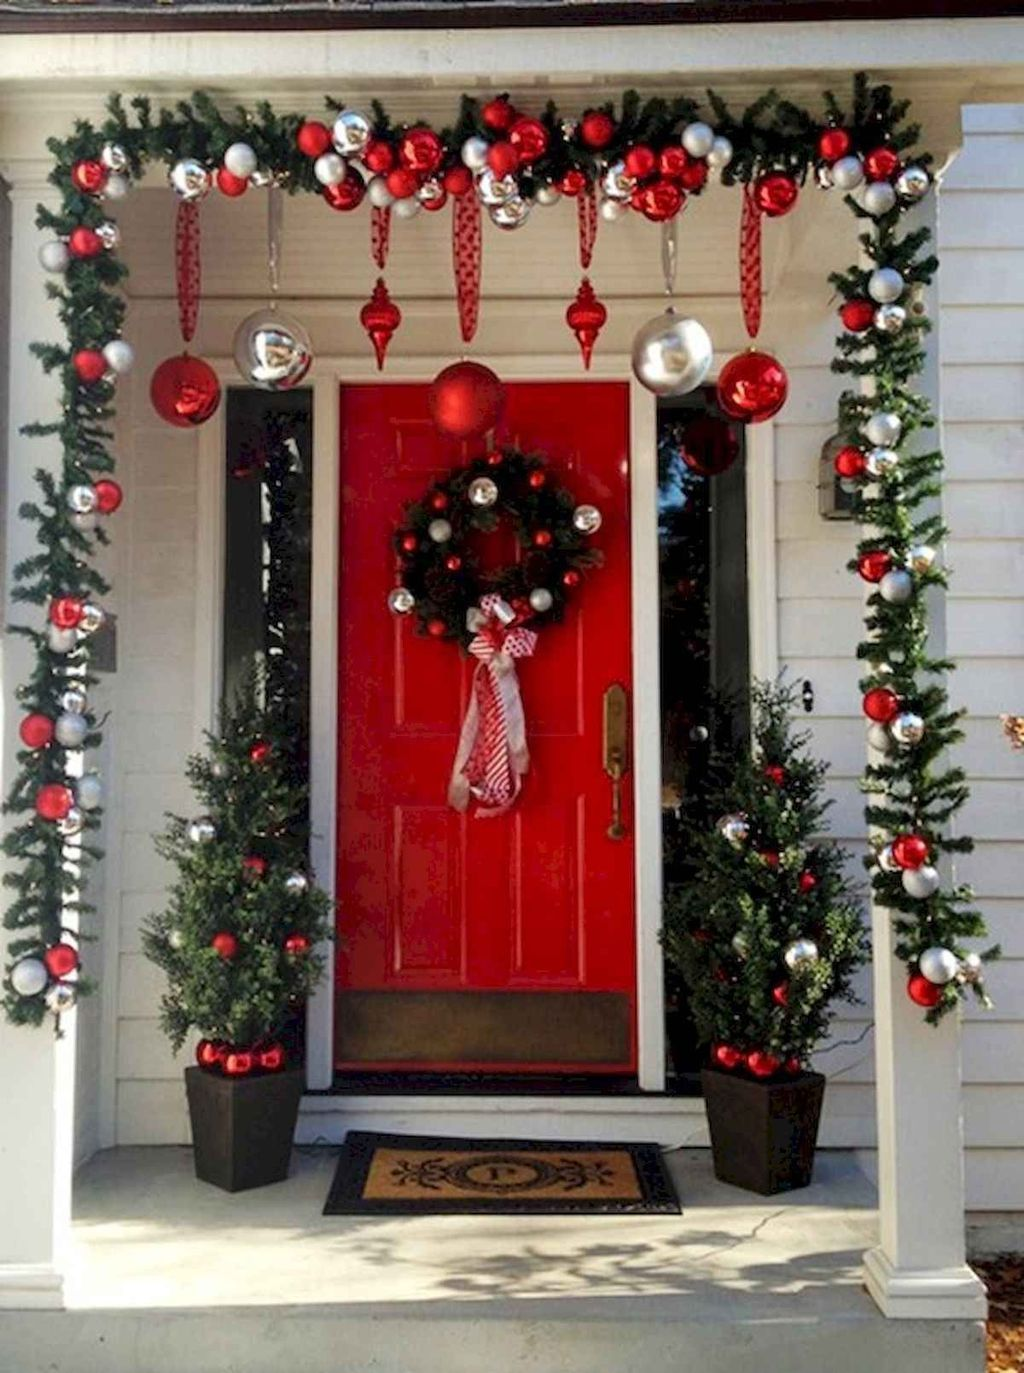 35 Gorgeous Front Porch Decor With Christmas Tree Christmas Porch Decor Christmas Cubicle Decorations Front Porch Christmas Decor